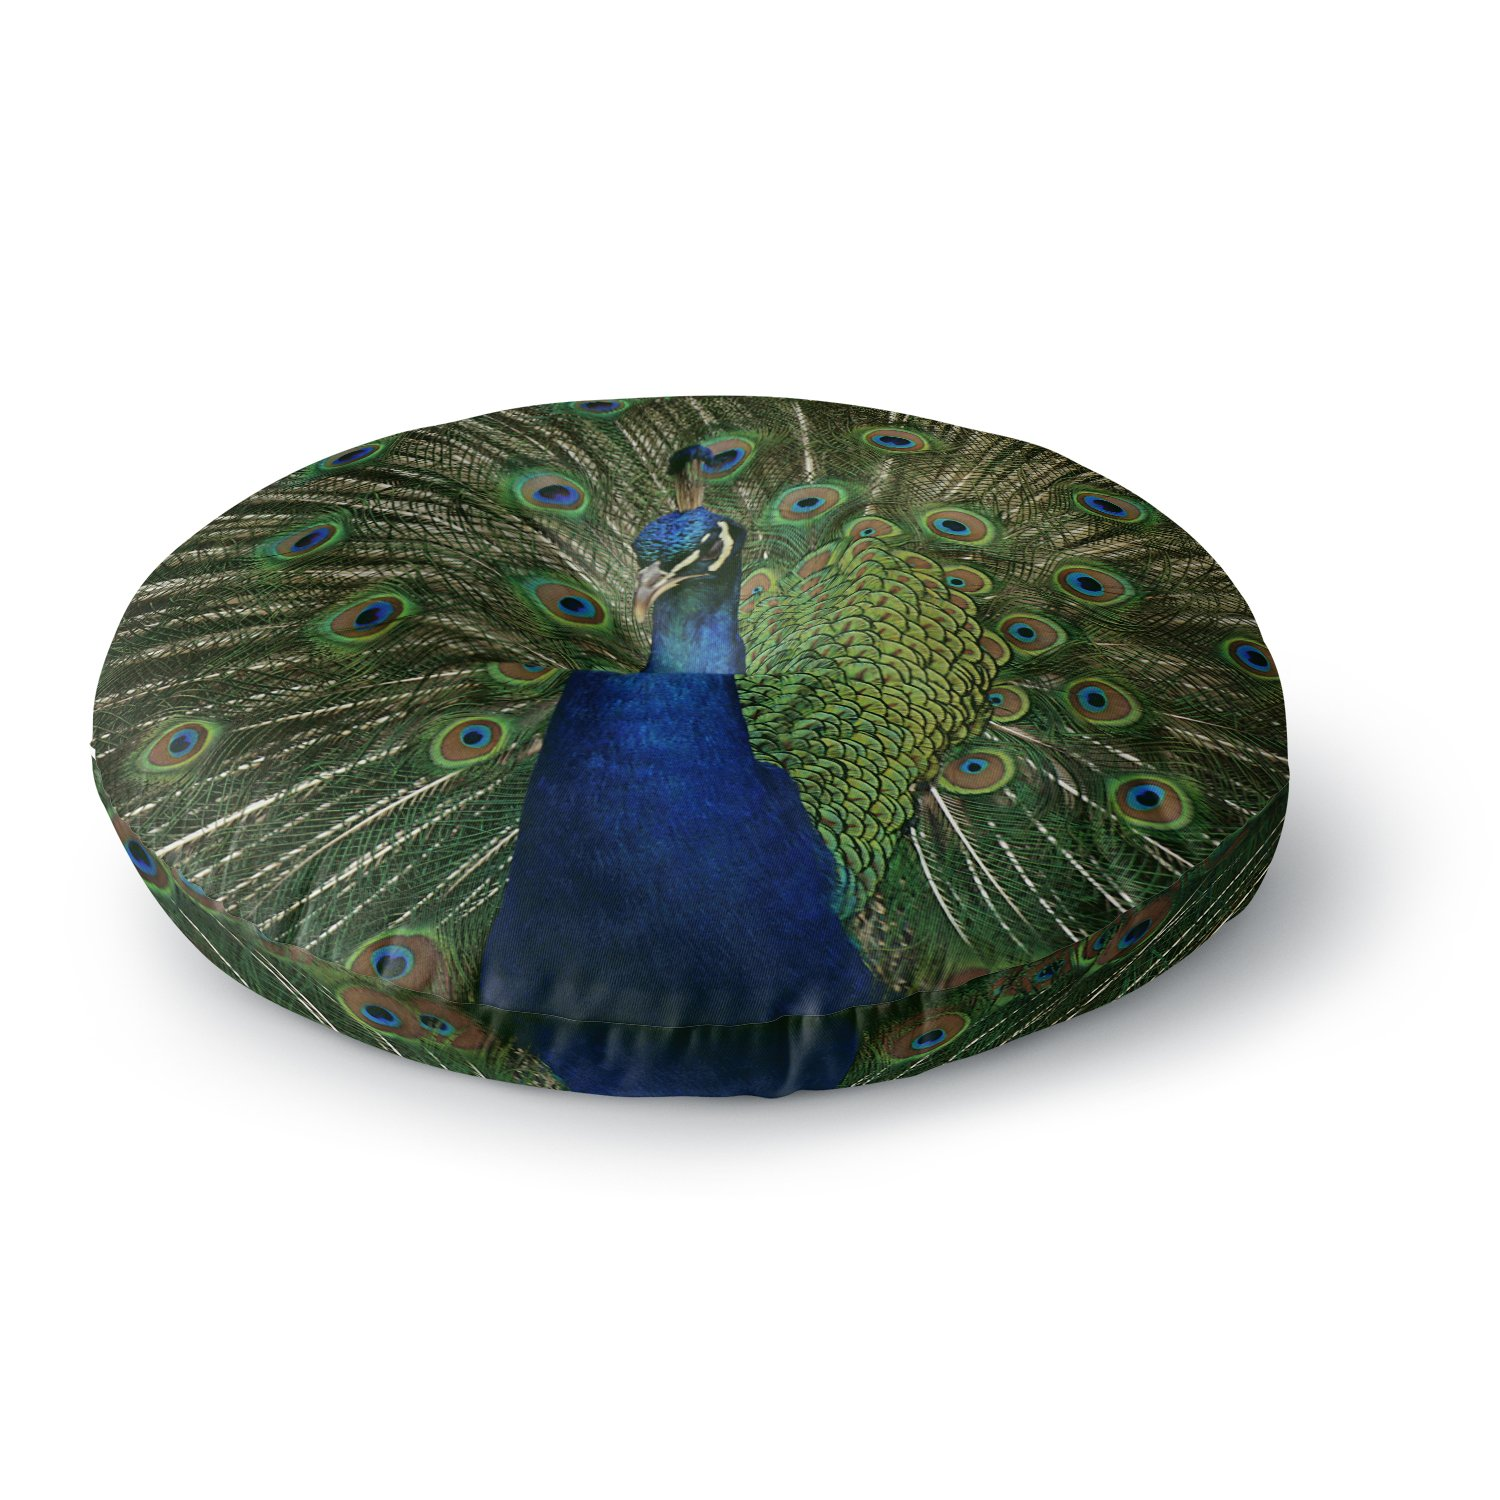 KESS InHouse Angie Turner Proud Peacock Blue Animals Round Floor Pillow, 26''